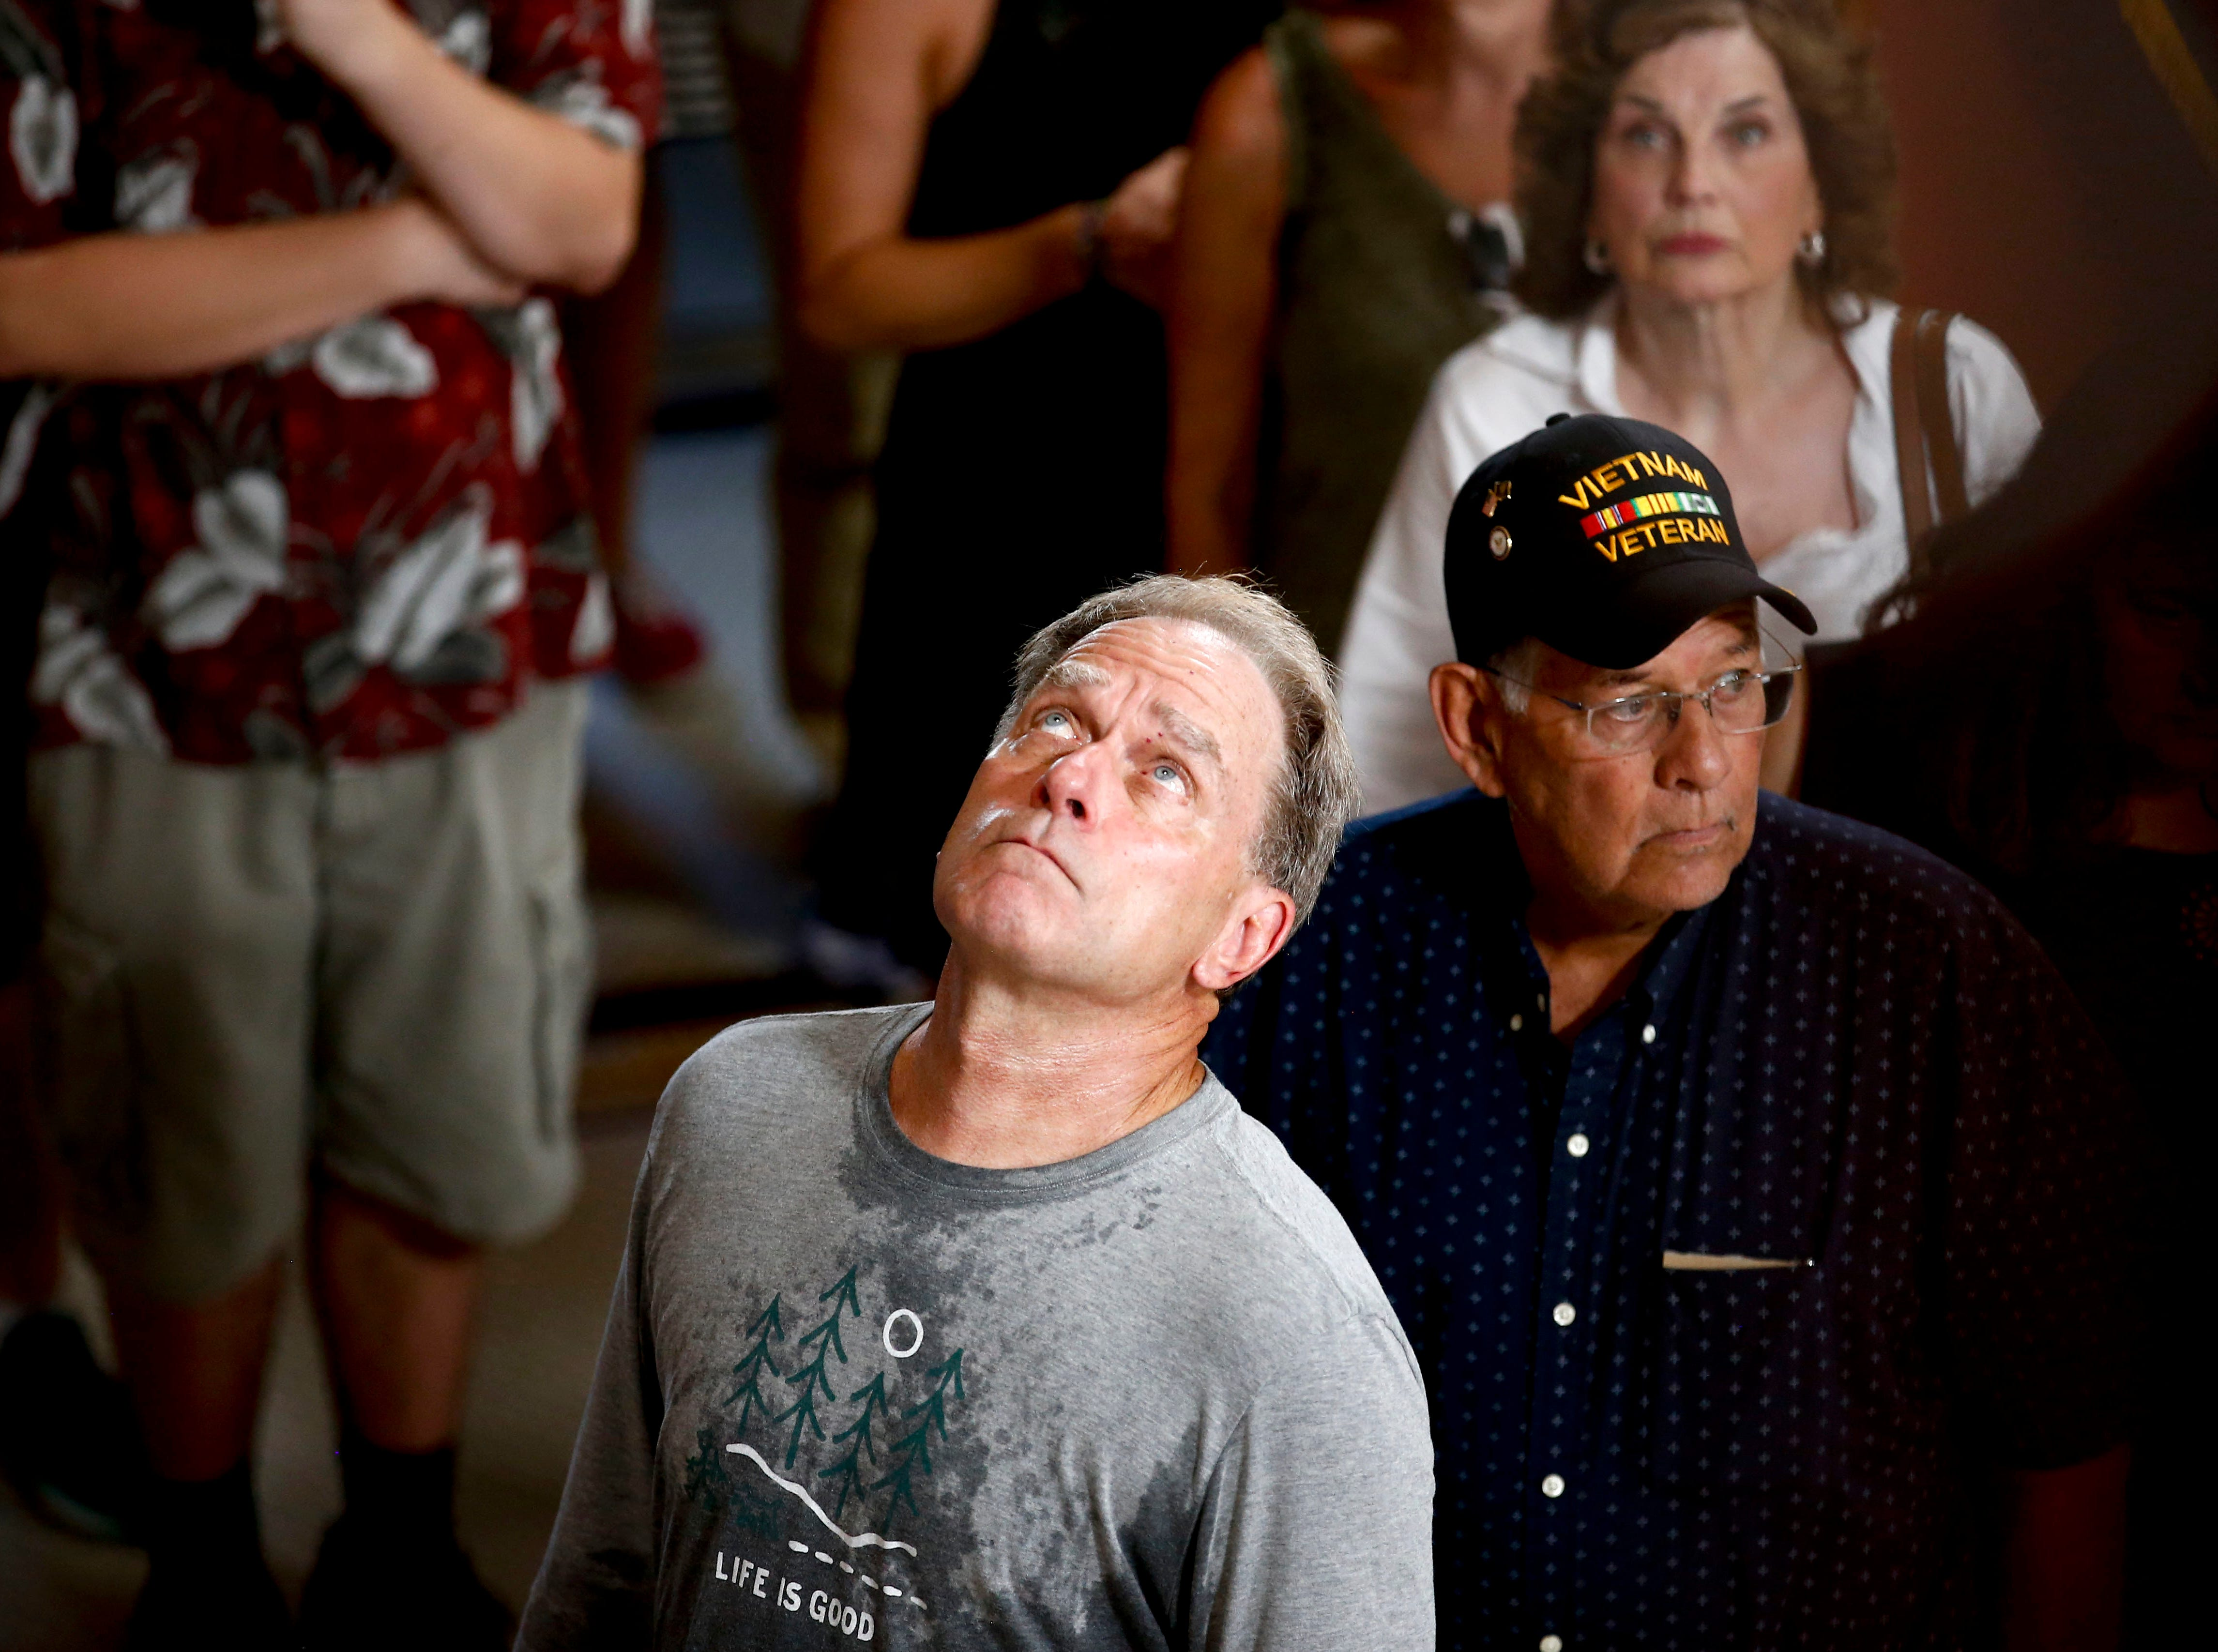 Members of the public pay their respects near the casket of Sen. John McCain during a viewing at the Arizona Capitol on Wednesday, Aug. 29, 2018, in Phoenix. (AP Photo/Ross D. Franklin)